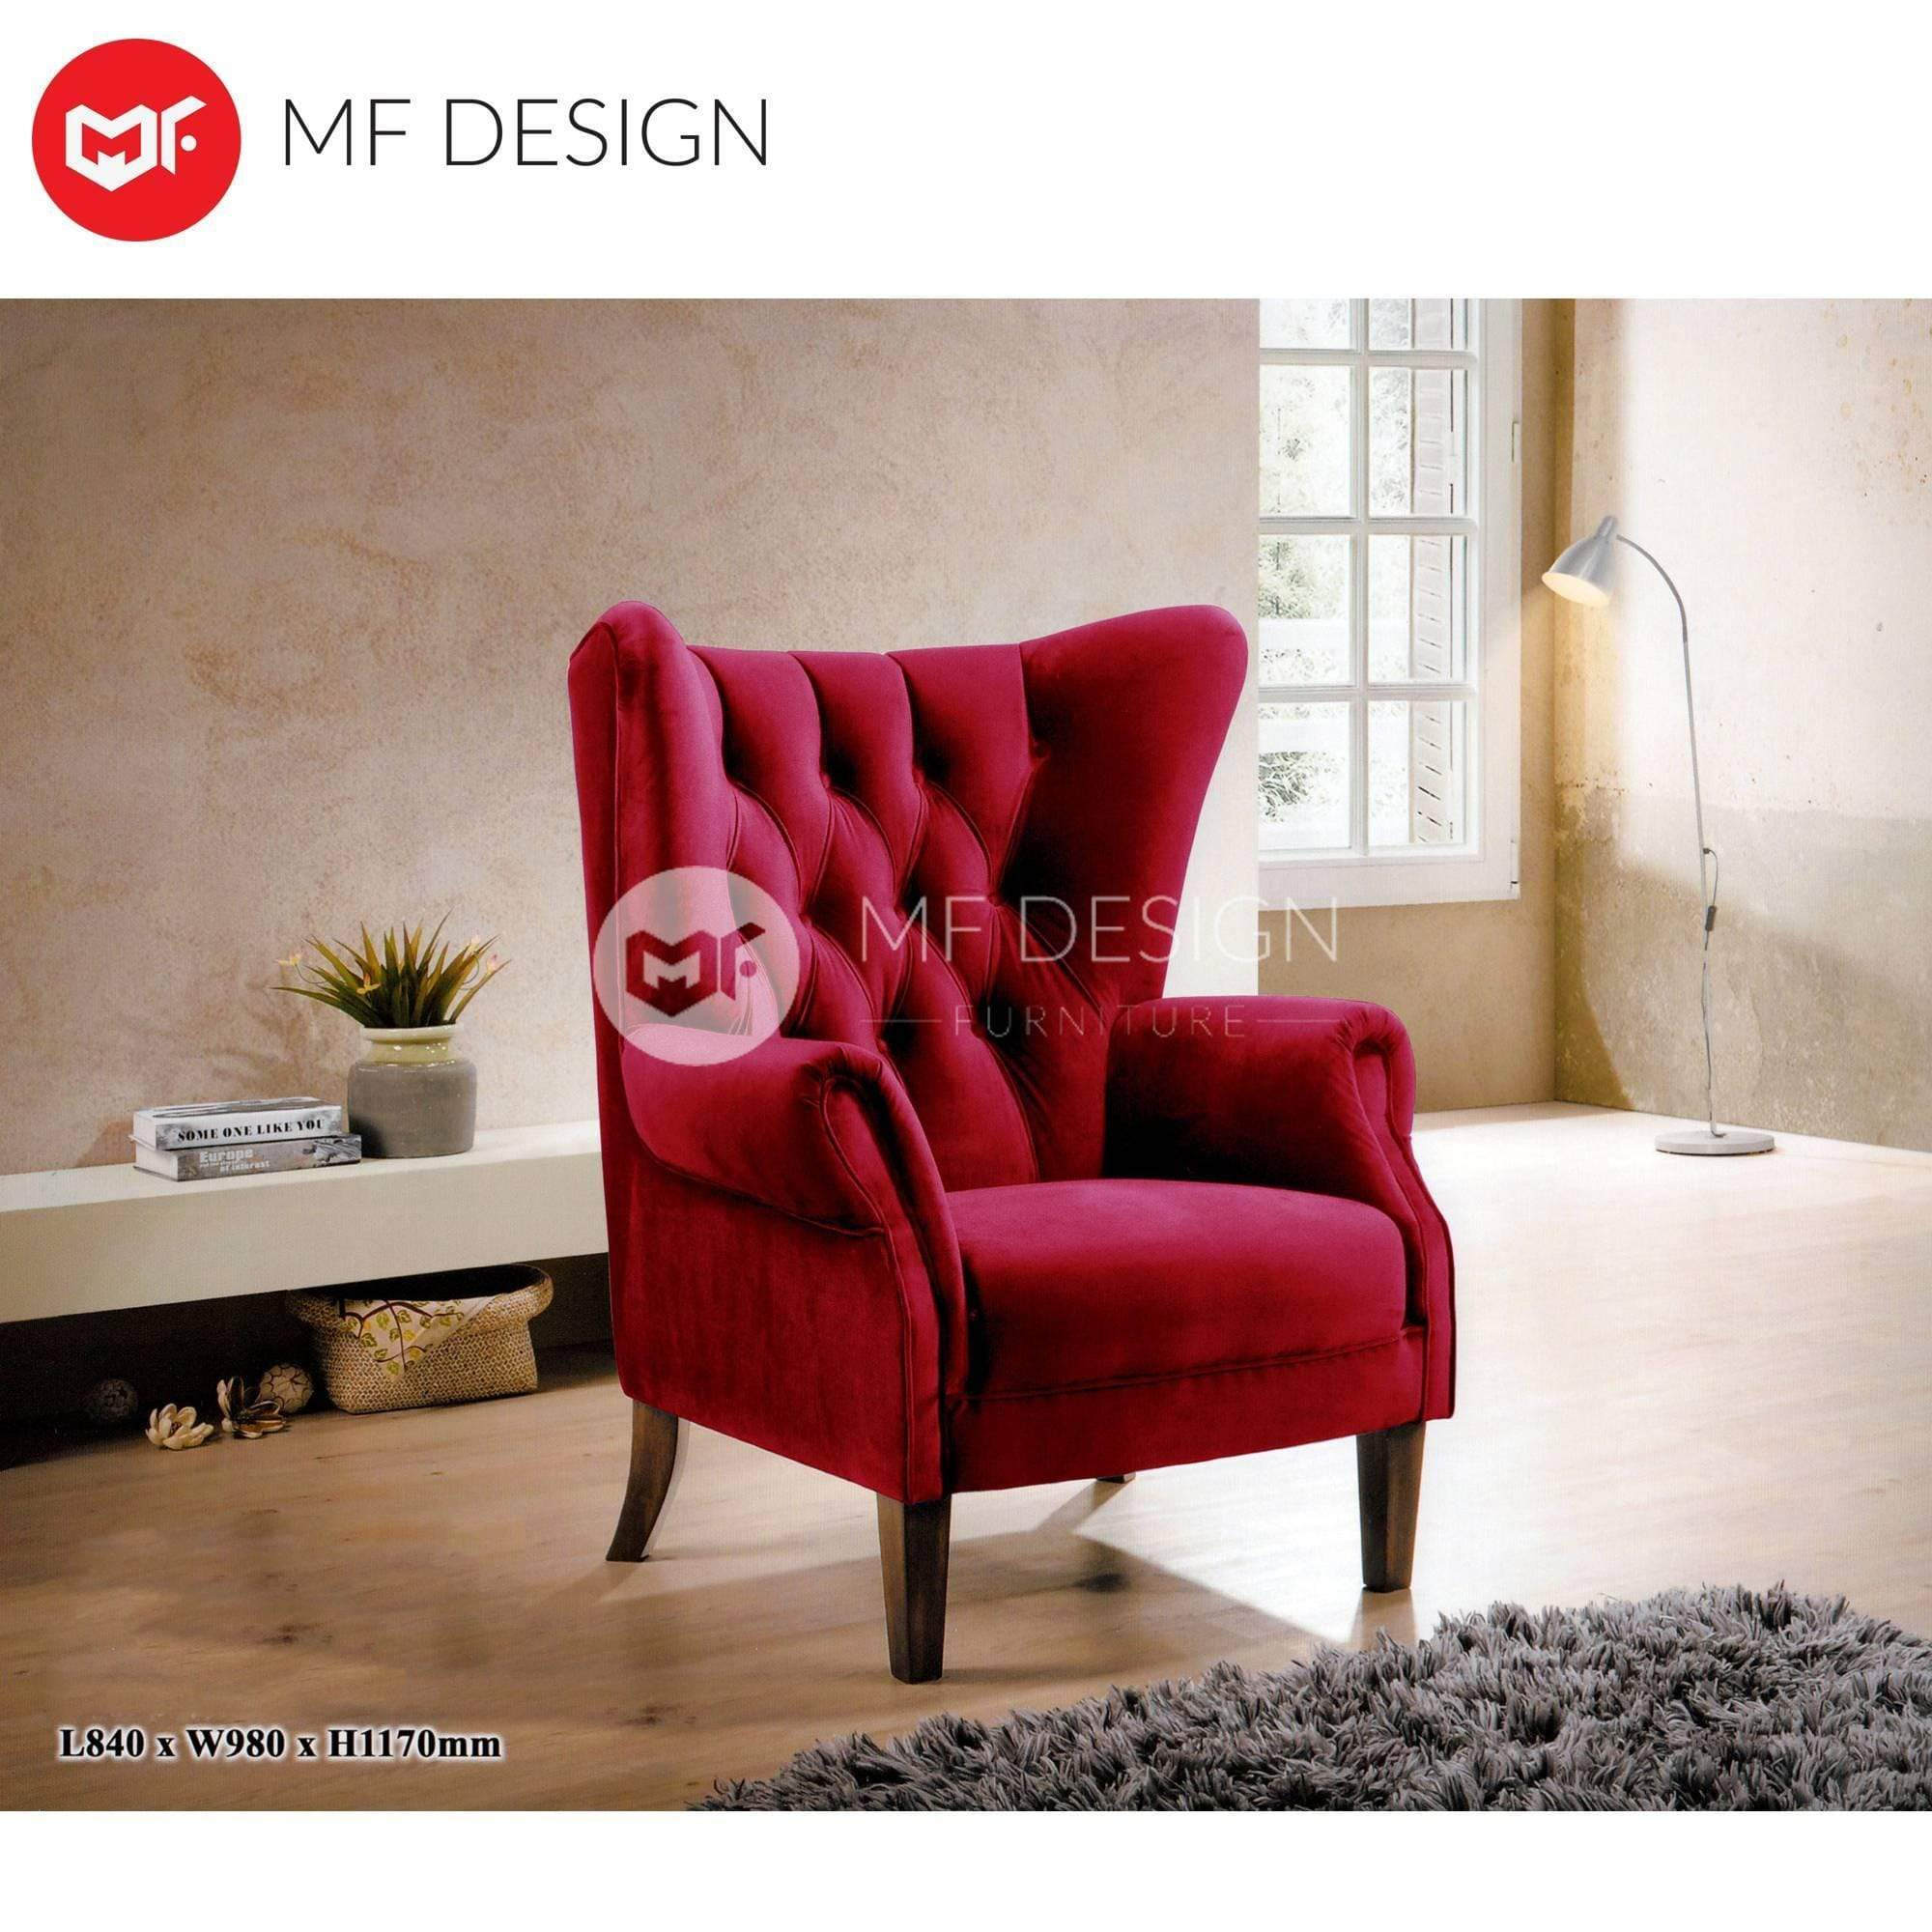 mfdesign88 Sofa Zambia Wing Chair - 1 Seater